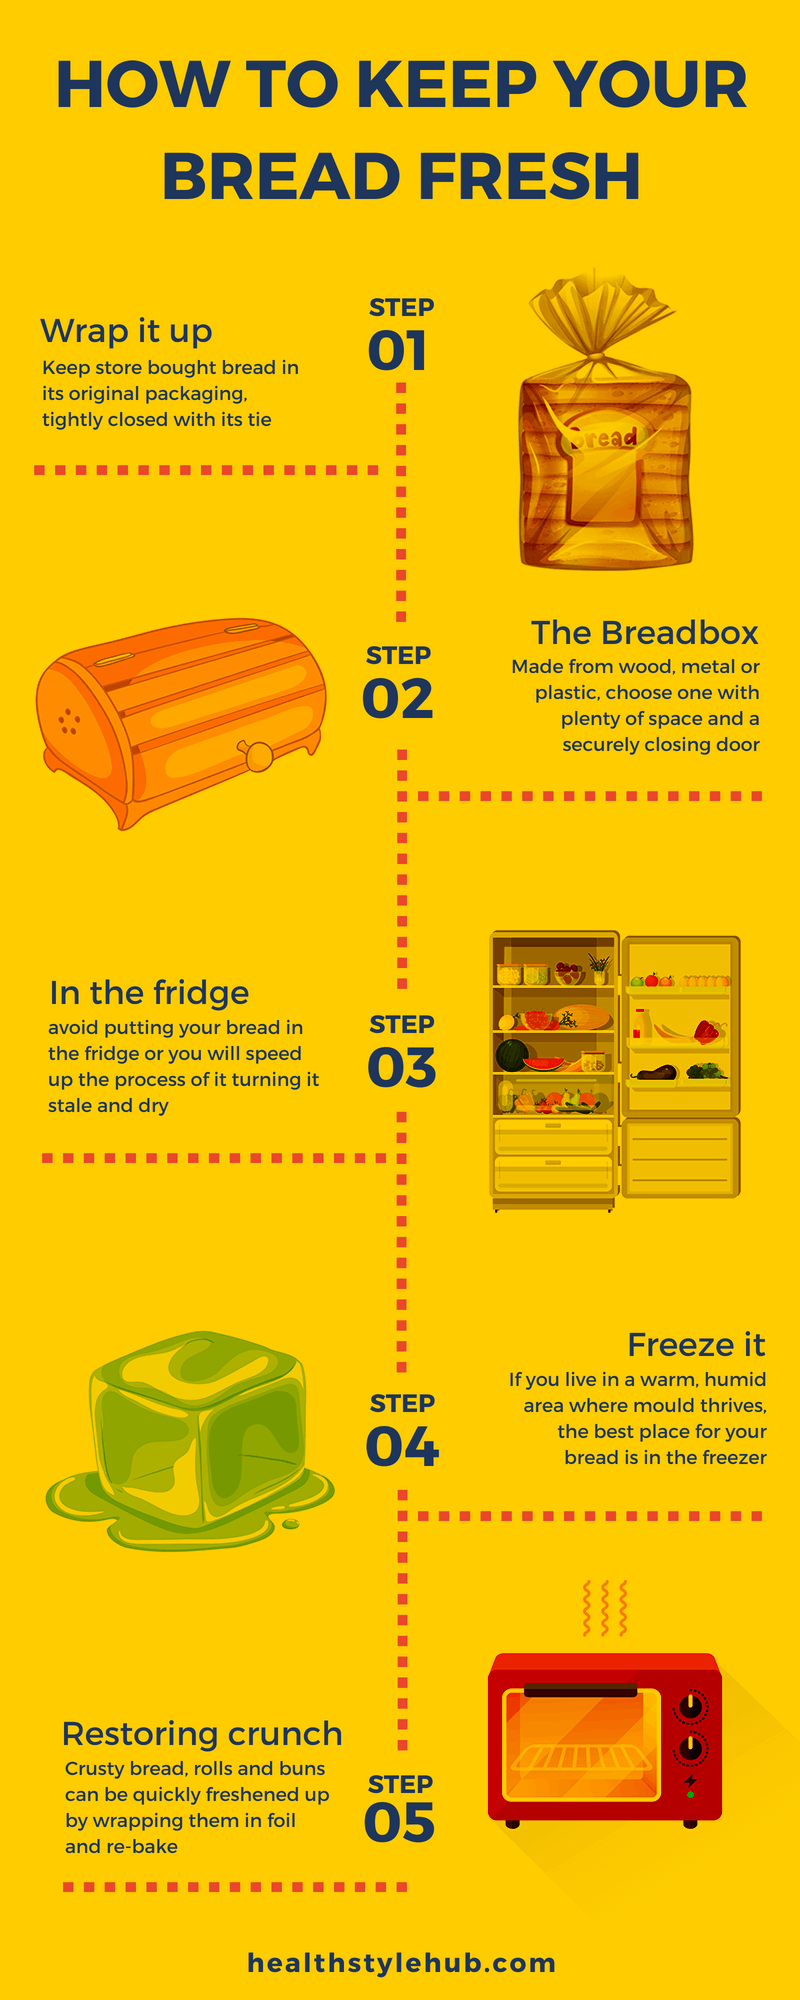 How to keep your bread fresh